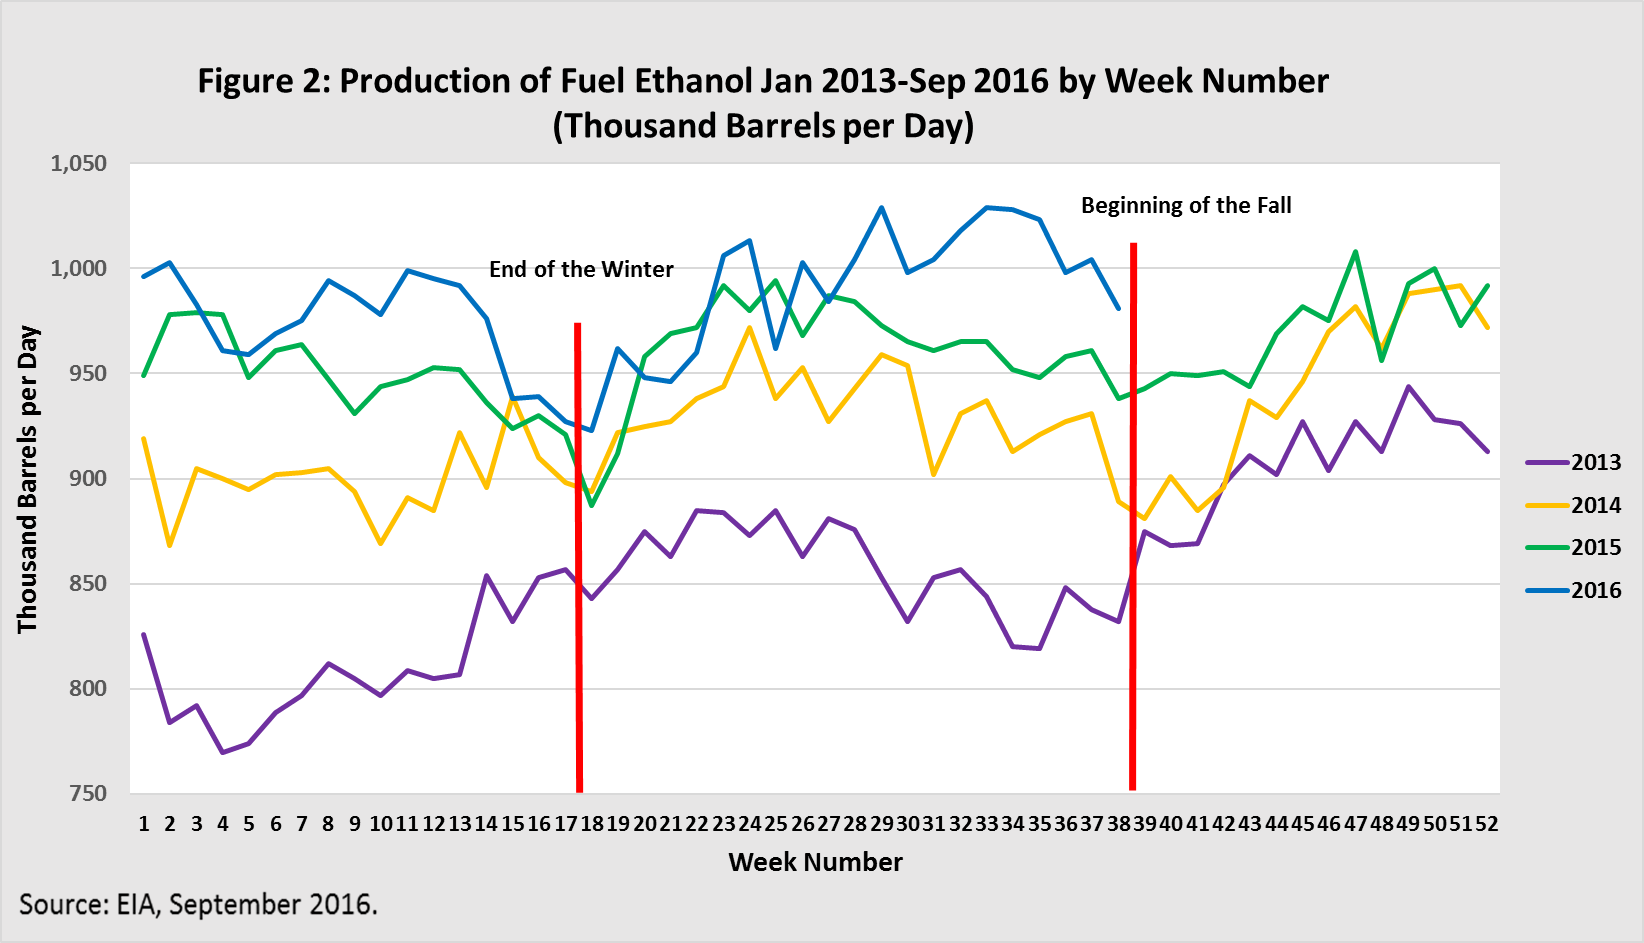 Production of Fuel Ethanol Jan 2013-Sep 2016